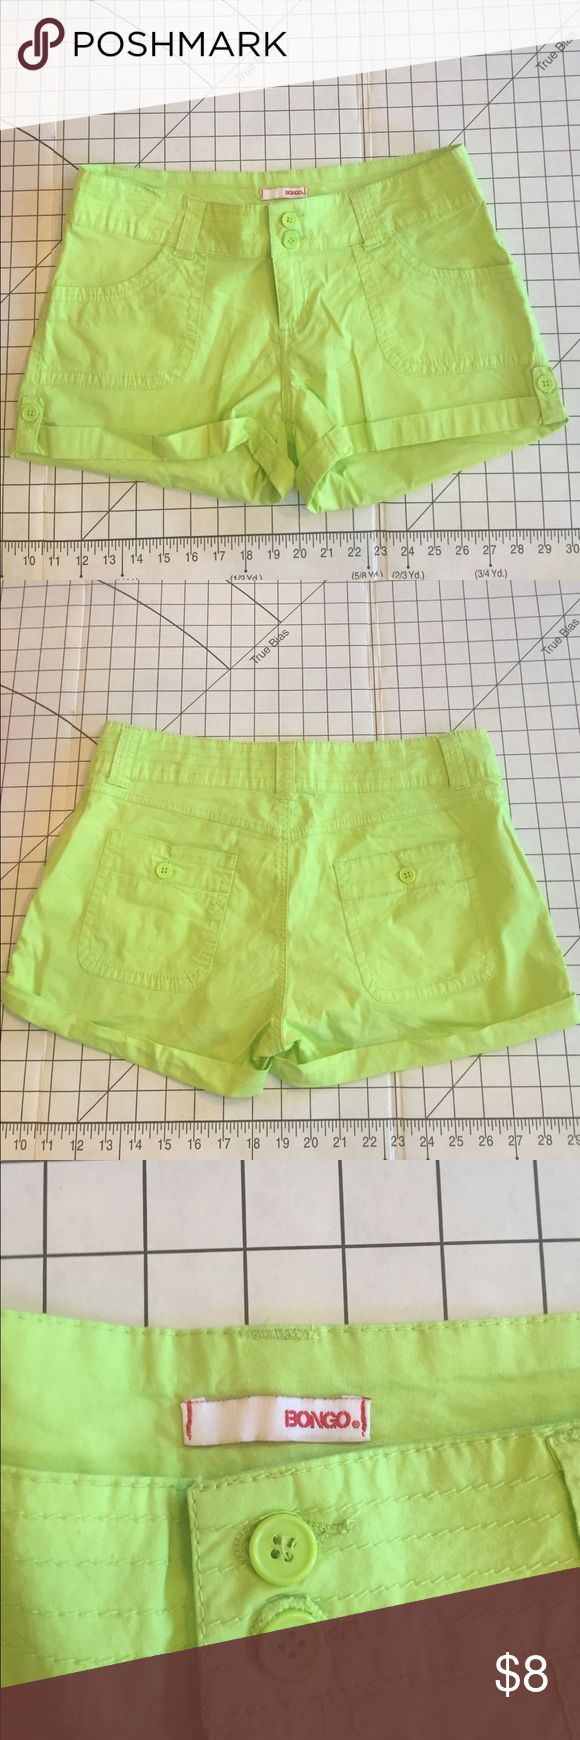 "Bingo lime green shorts Comfy shorts, double button 5"" inseam BONGO Shorts"